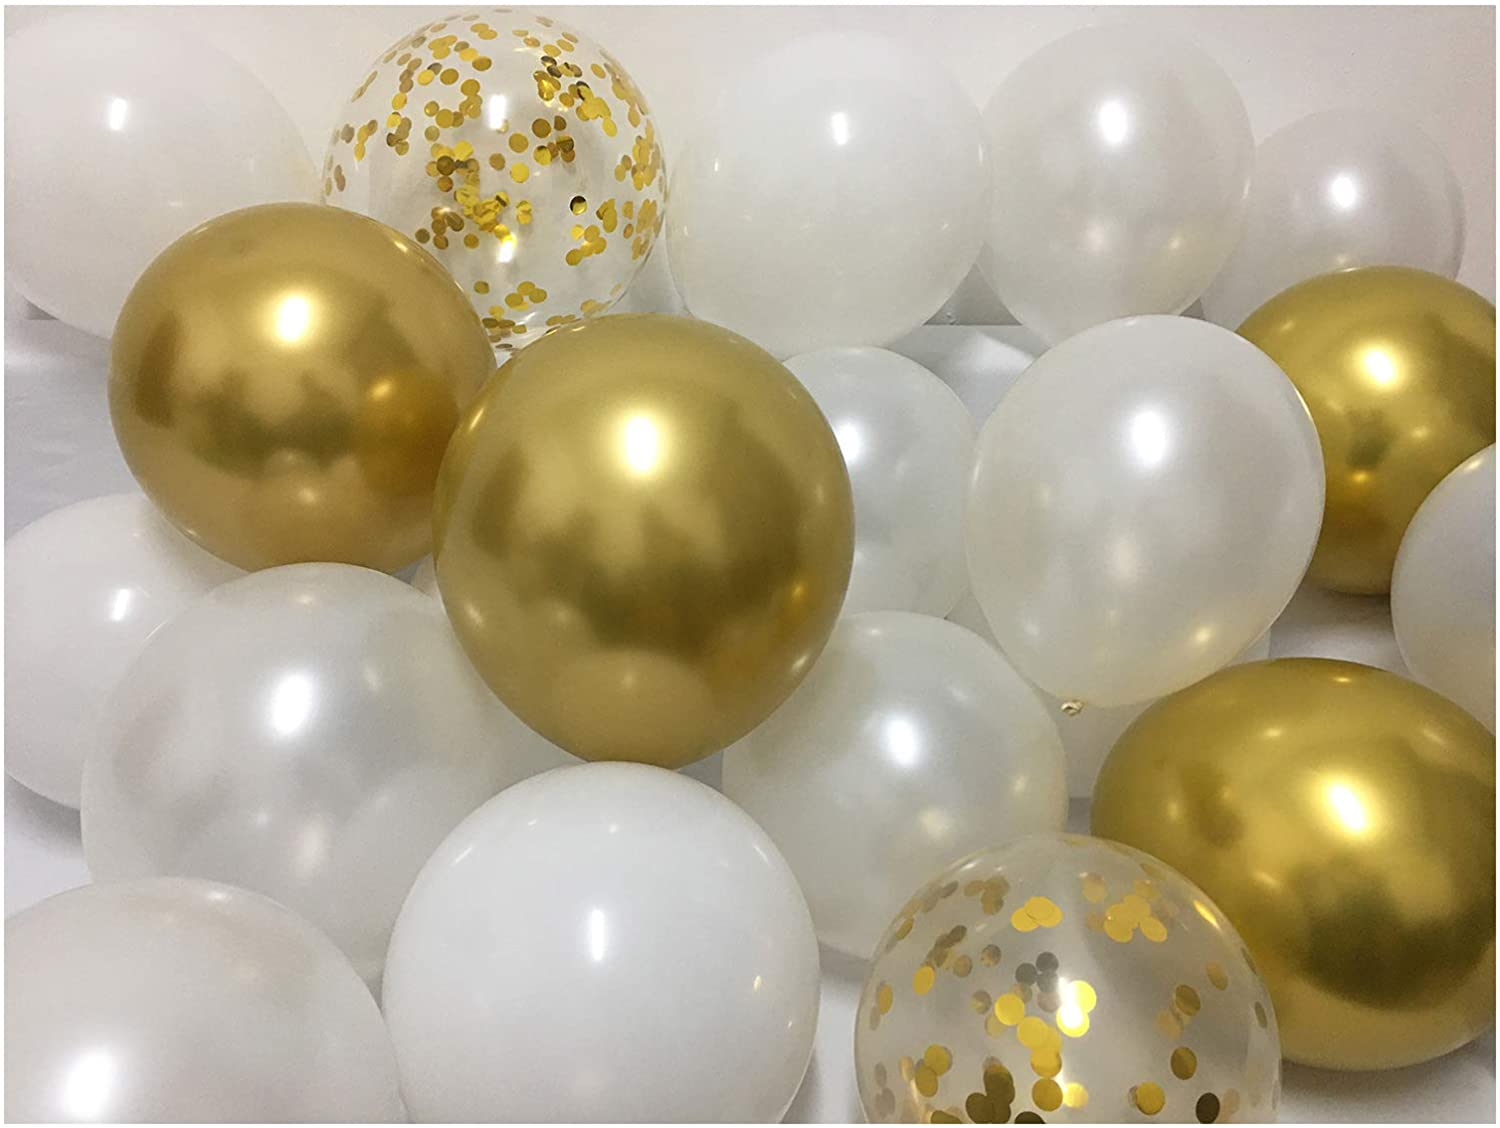 Latex Balloons White and Gold –12inch Matte Pearlized White Metallic Chrome Gold Confetti Party Ballons for Birthday Bridal Baby Shower Wedding Graduation Decorations 60packs (White + Gold)